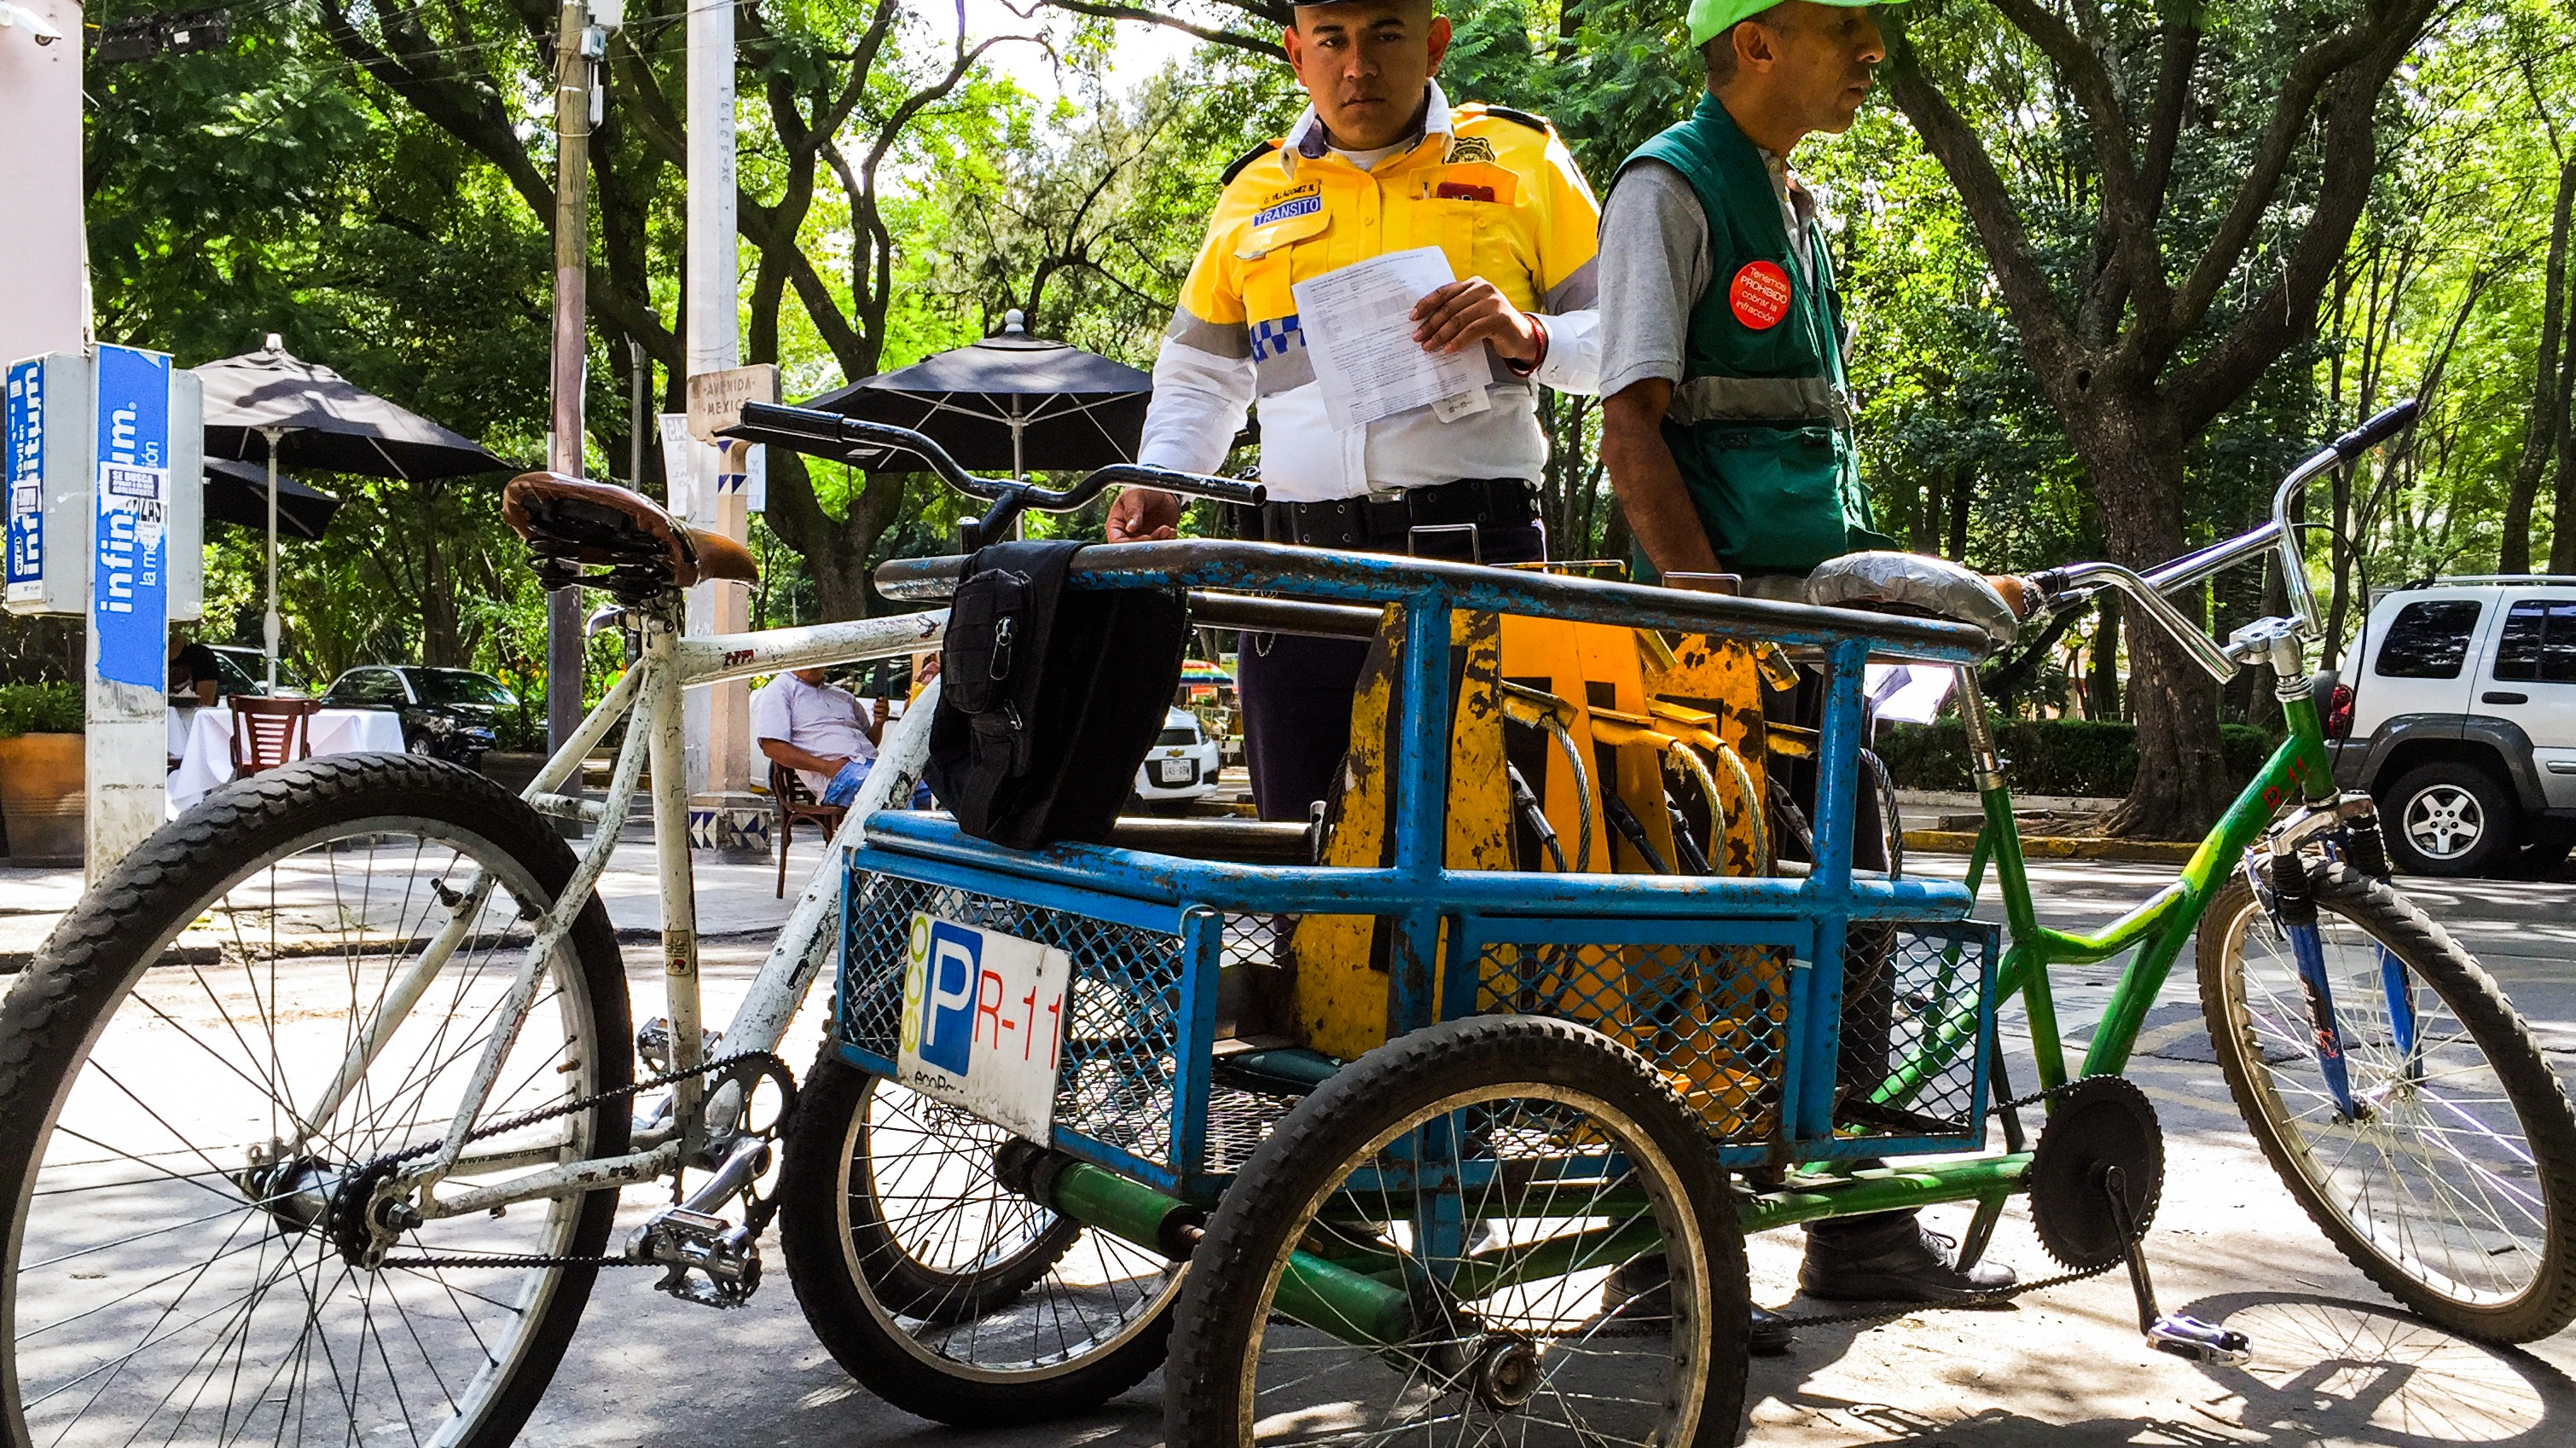 Why Residents of Mexico City Are Organizing Themselves Against Parking Meters